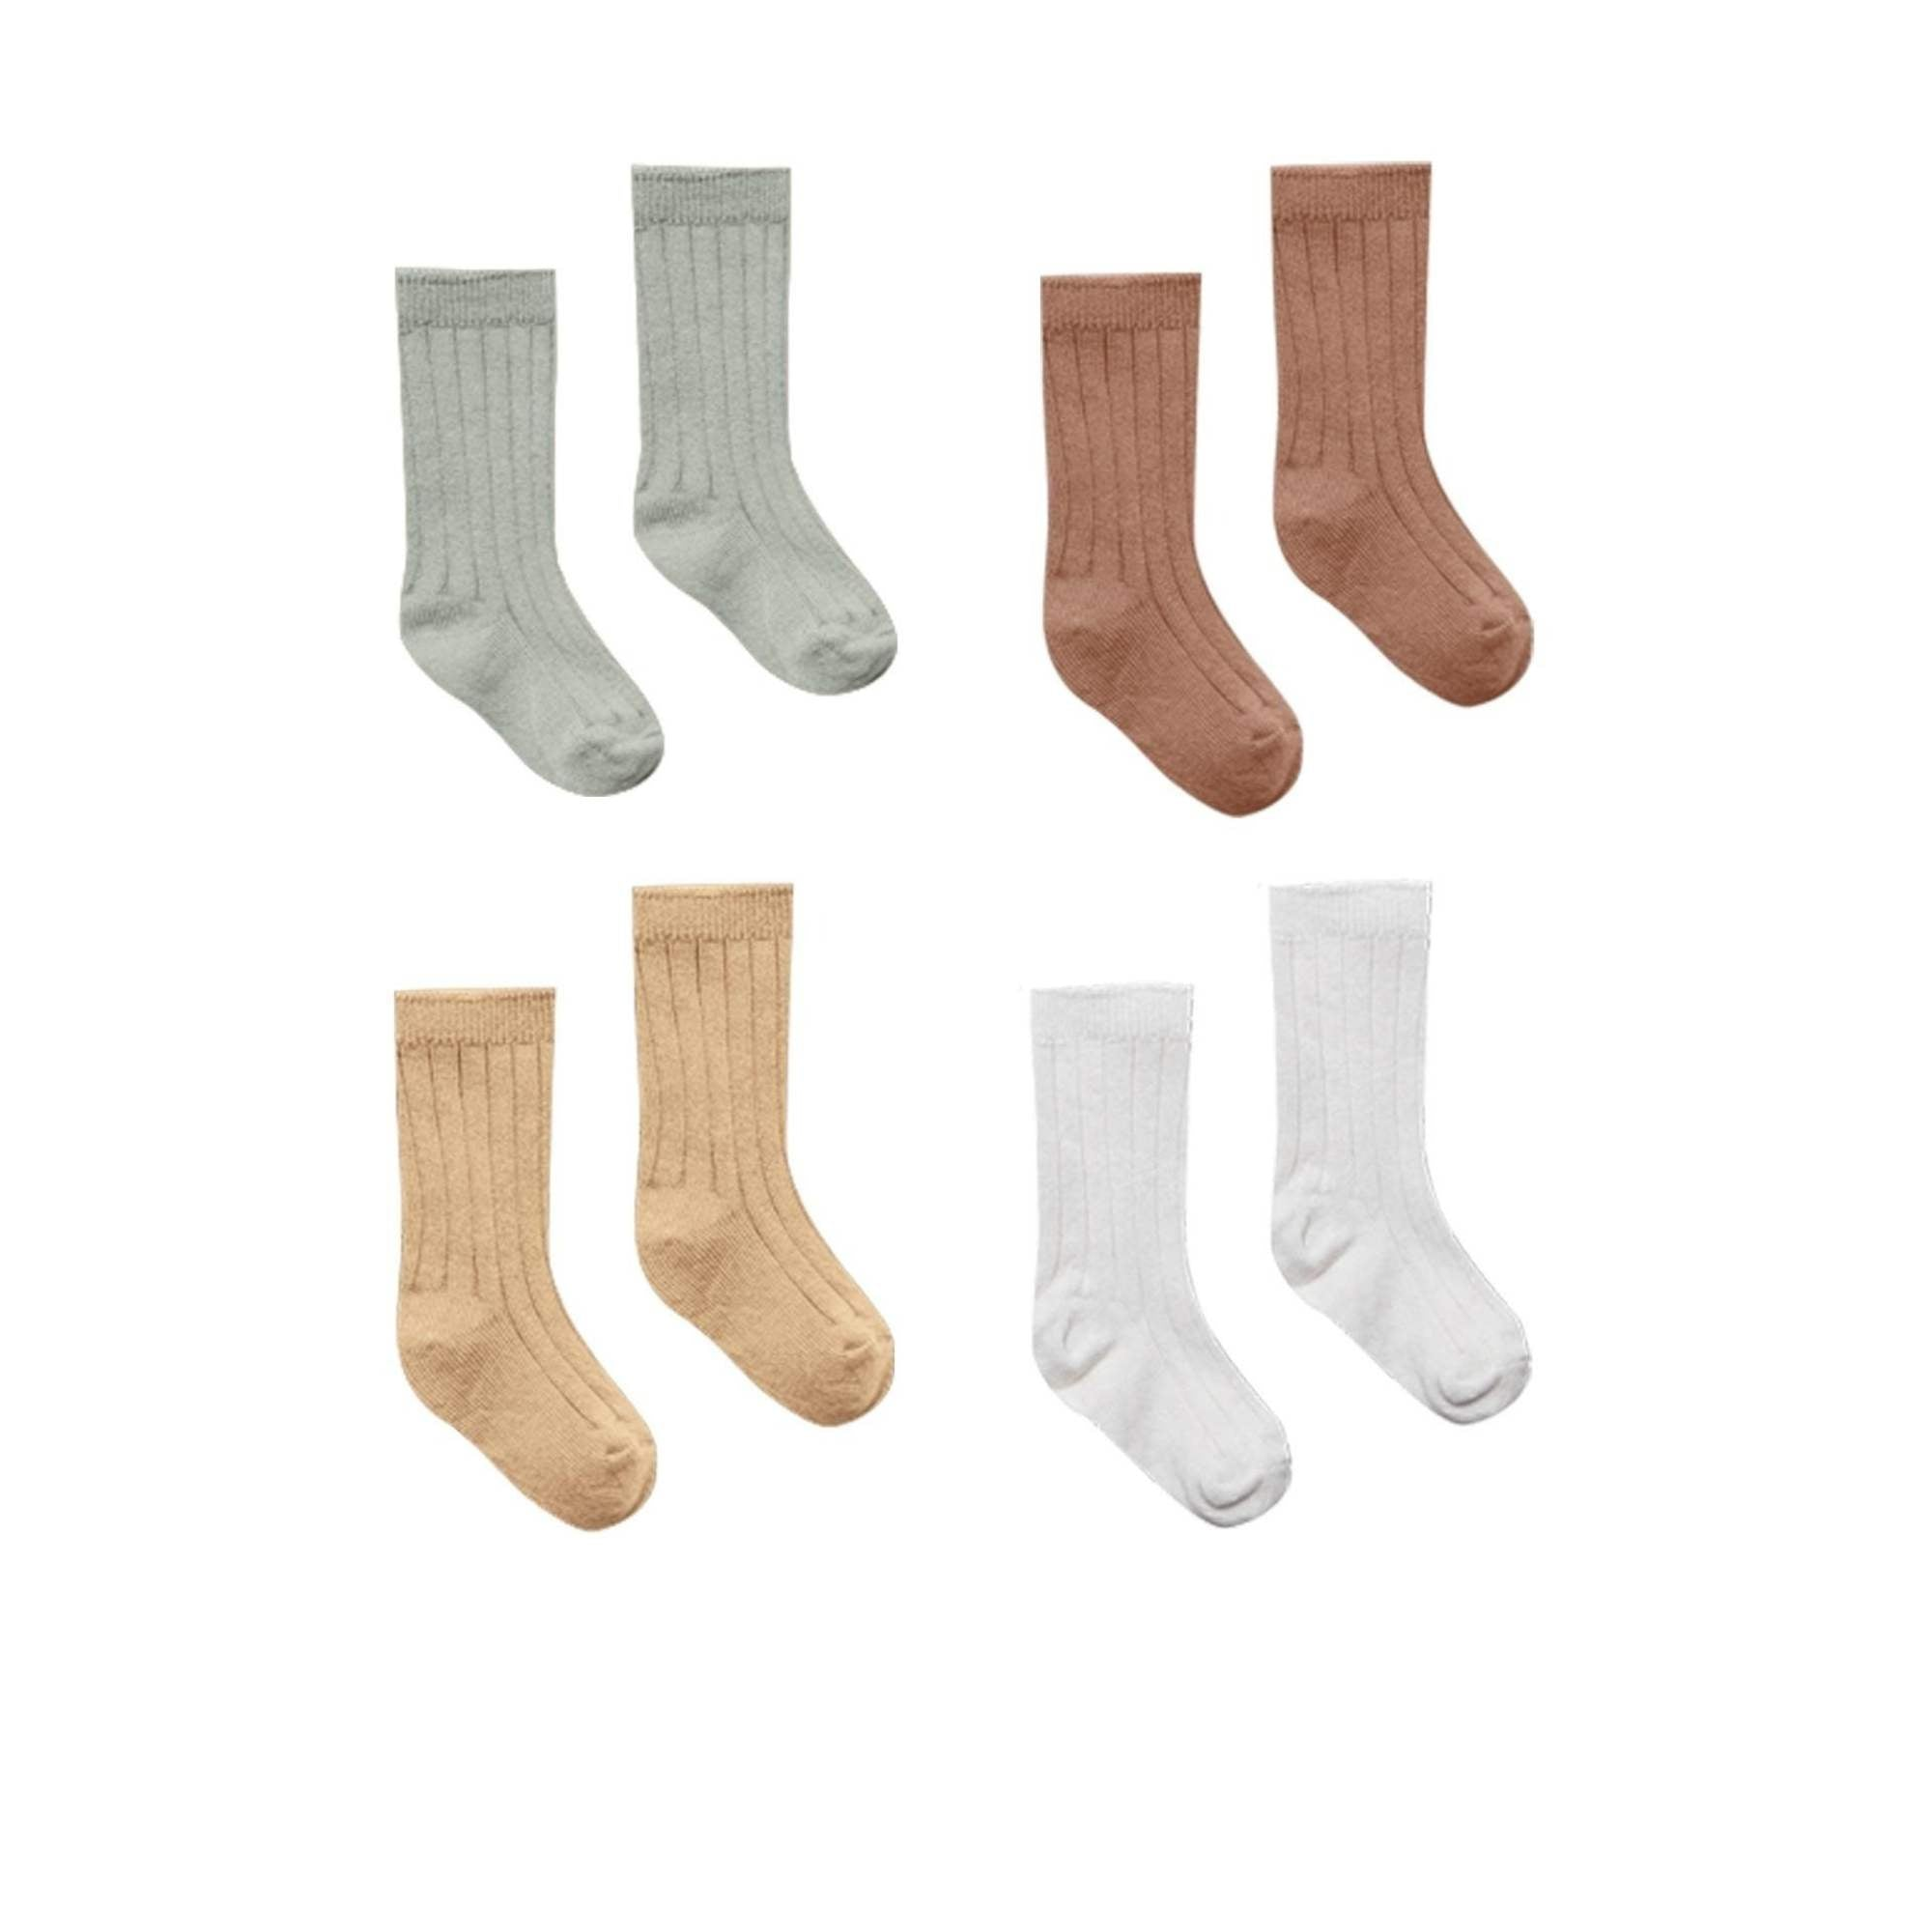 Organic Ribbed Knit Socks - 4 Pack - Lindsey Paige